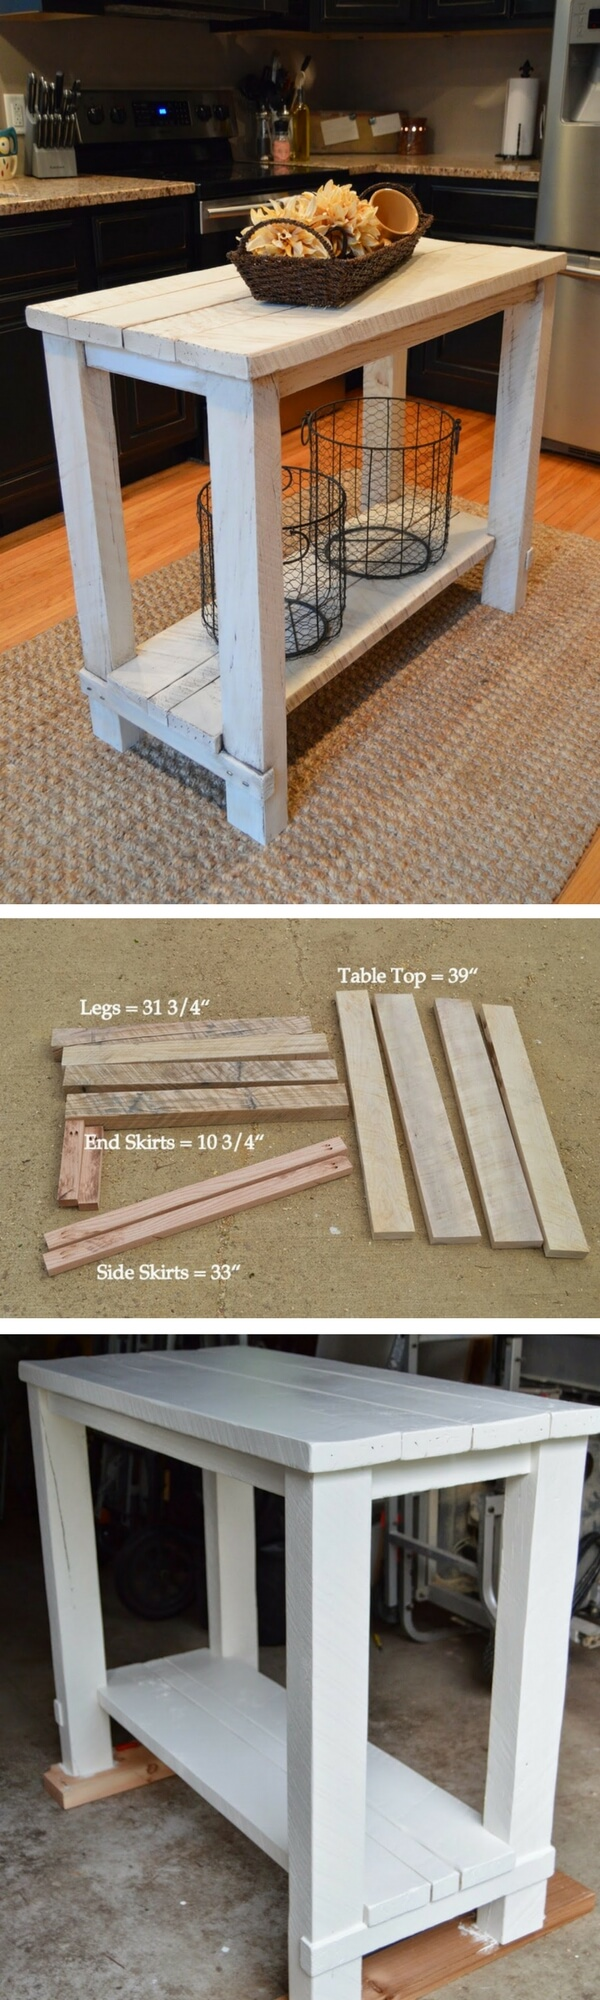 Small Kitchen Island is Rustic and Simple to Make